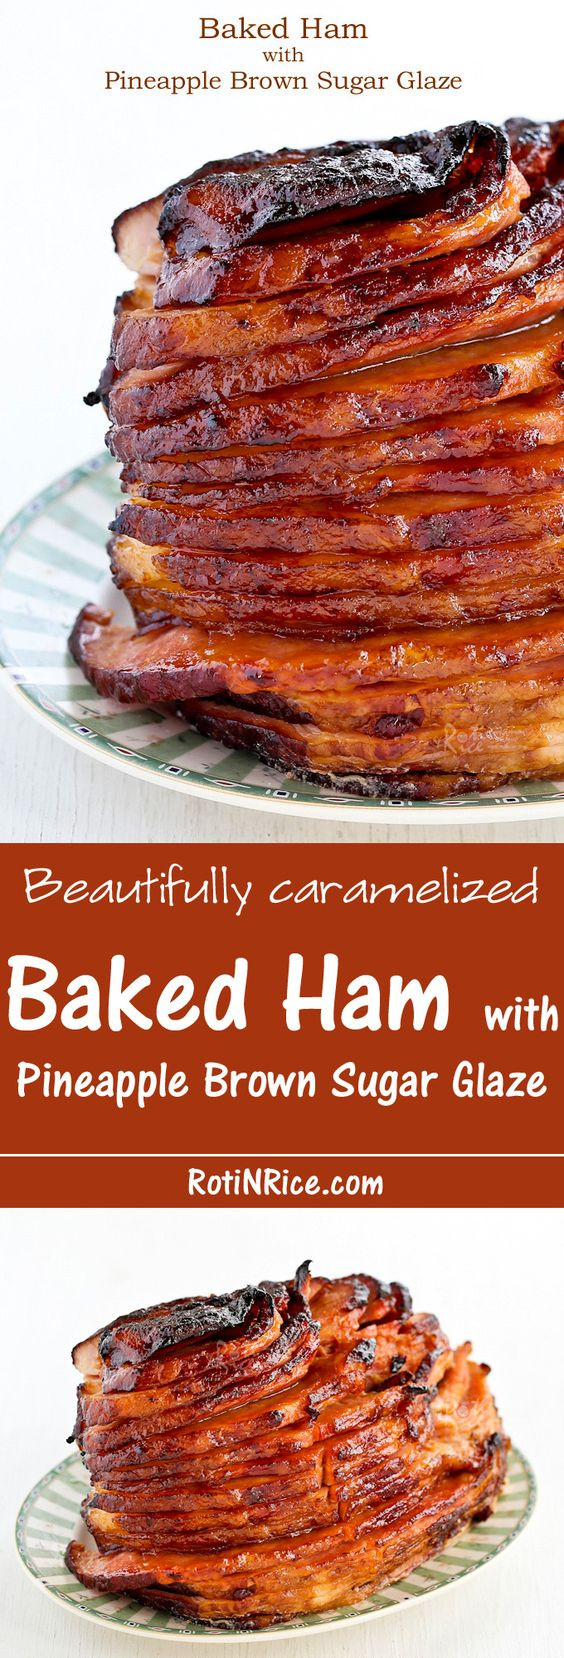 Thanksgiving Ham Glaze Recipes  The BEST Thanksgiving Dinner Holiday Favorite Menu Recipes